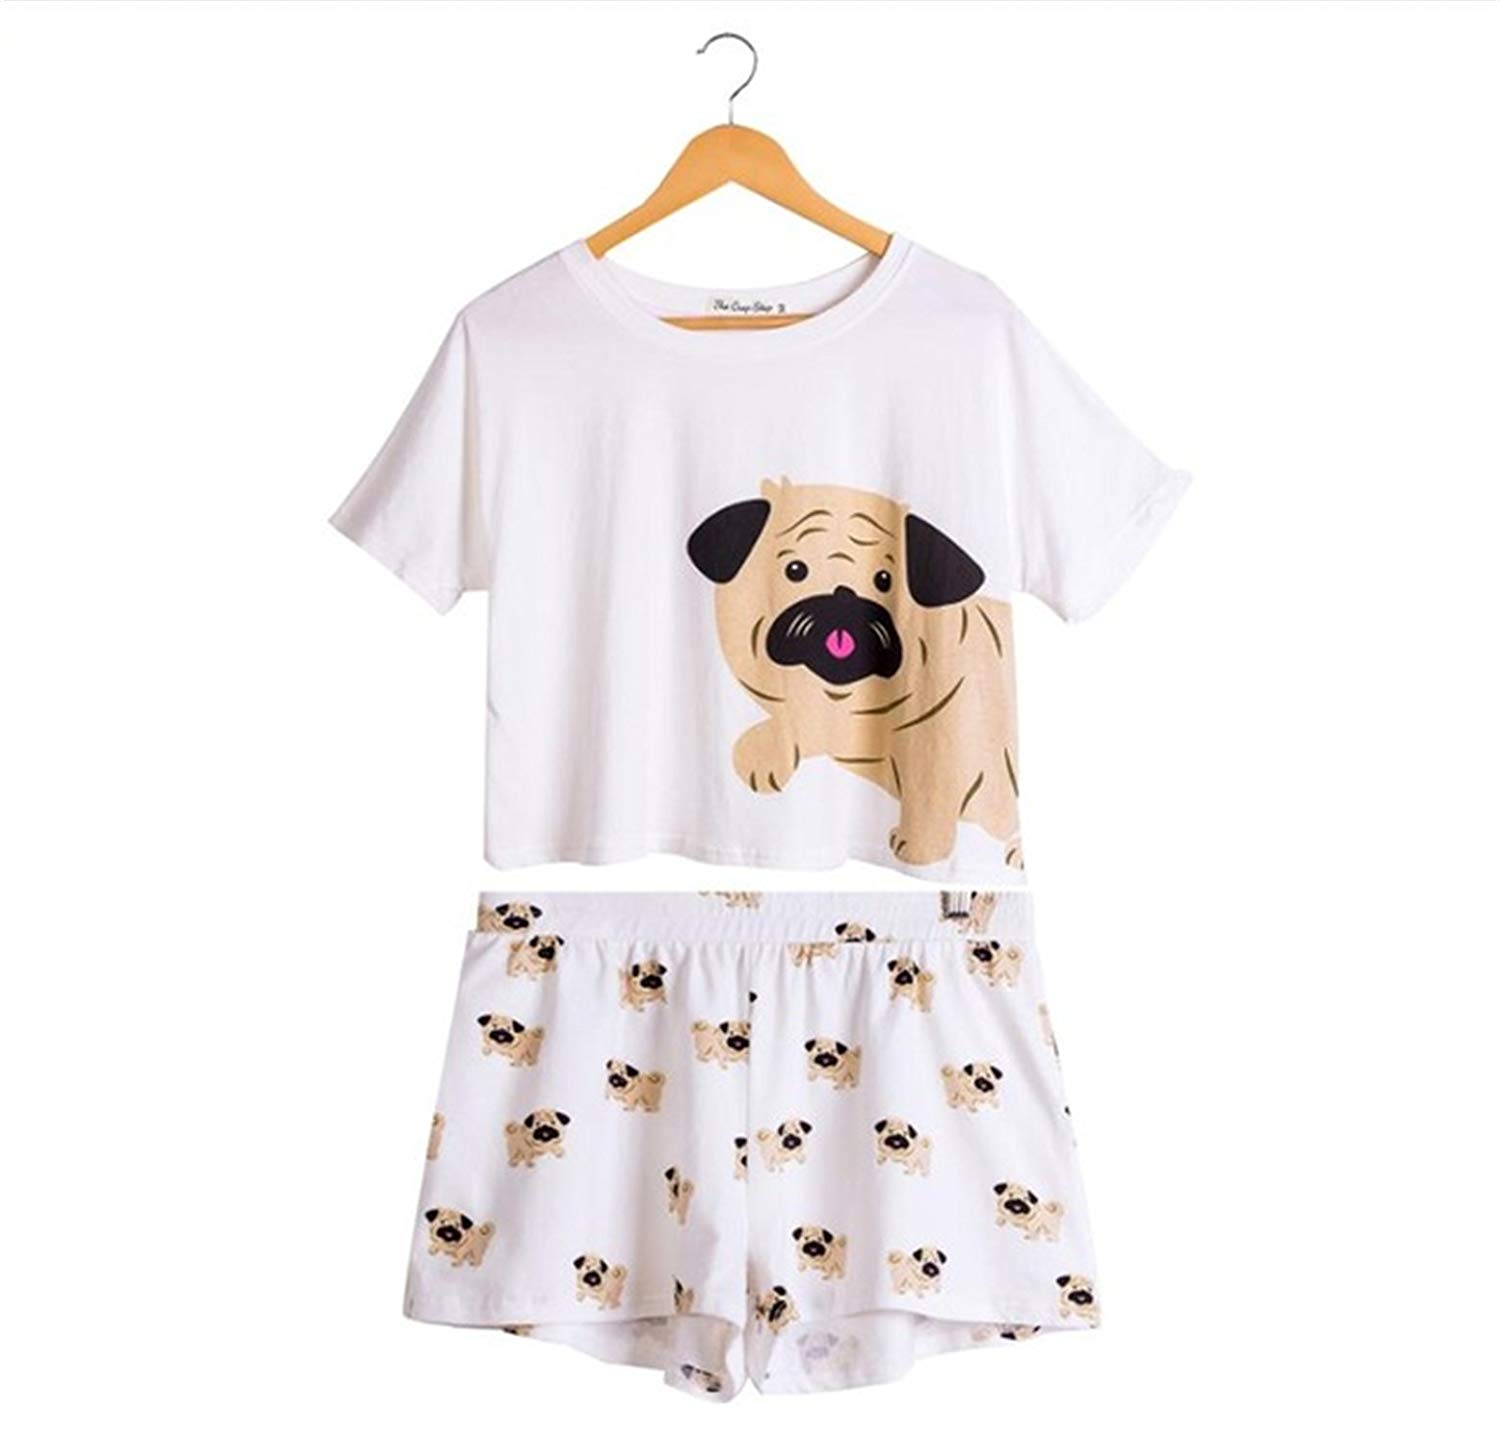 ce9b45bdf4 Get Quotations · Cute Dog Pajama Set Women Pug Print 2 Pieces Set Crop Top  + Shorts Elastic Waist